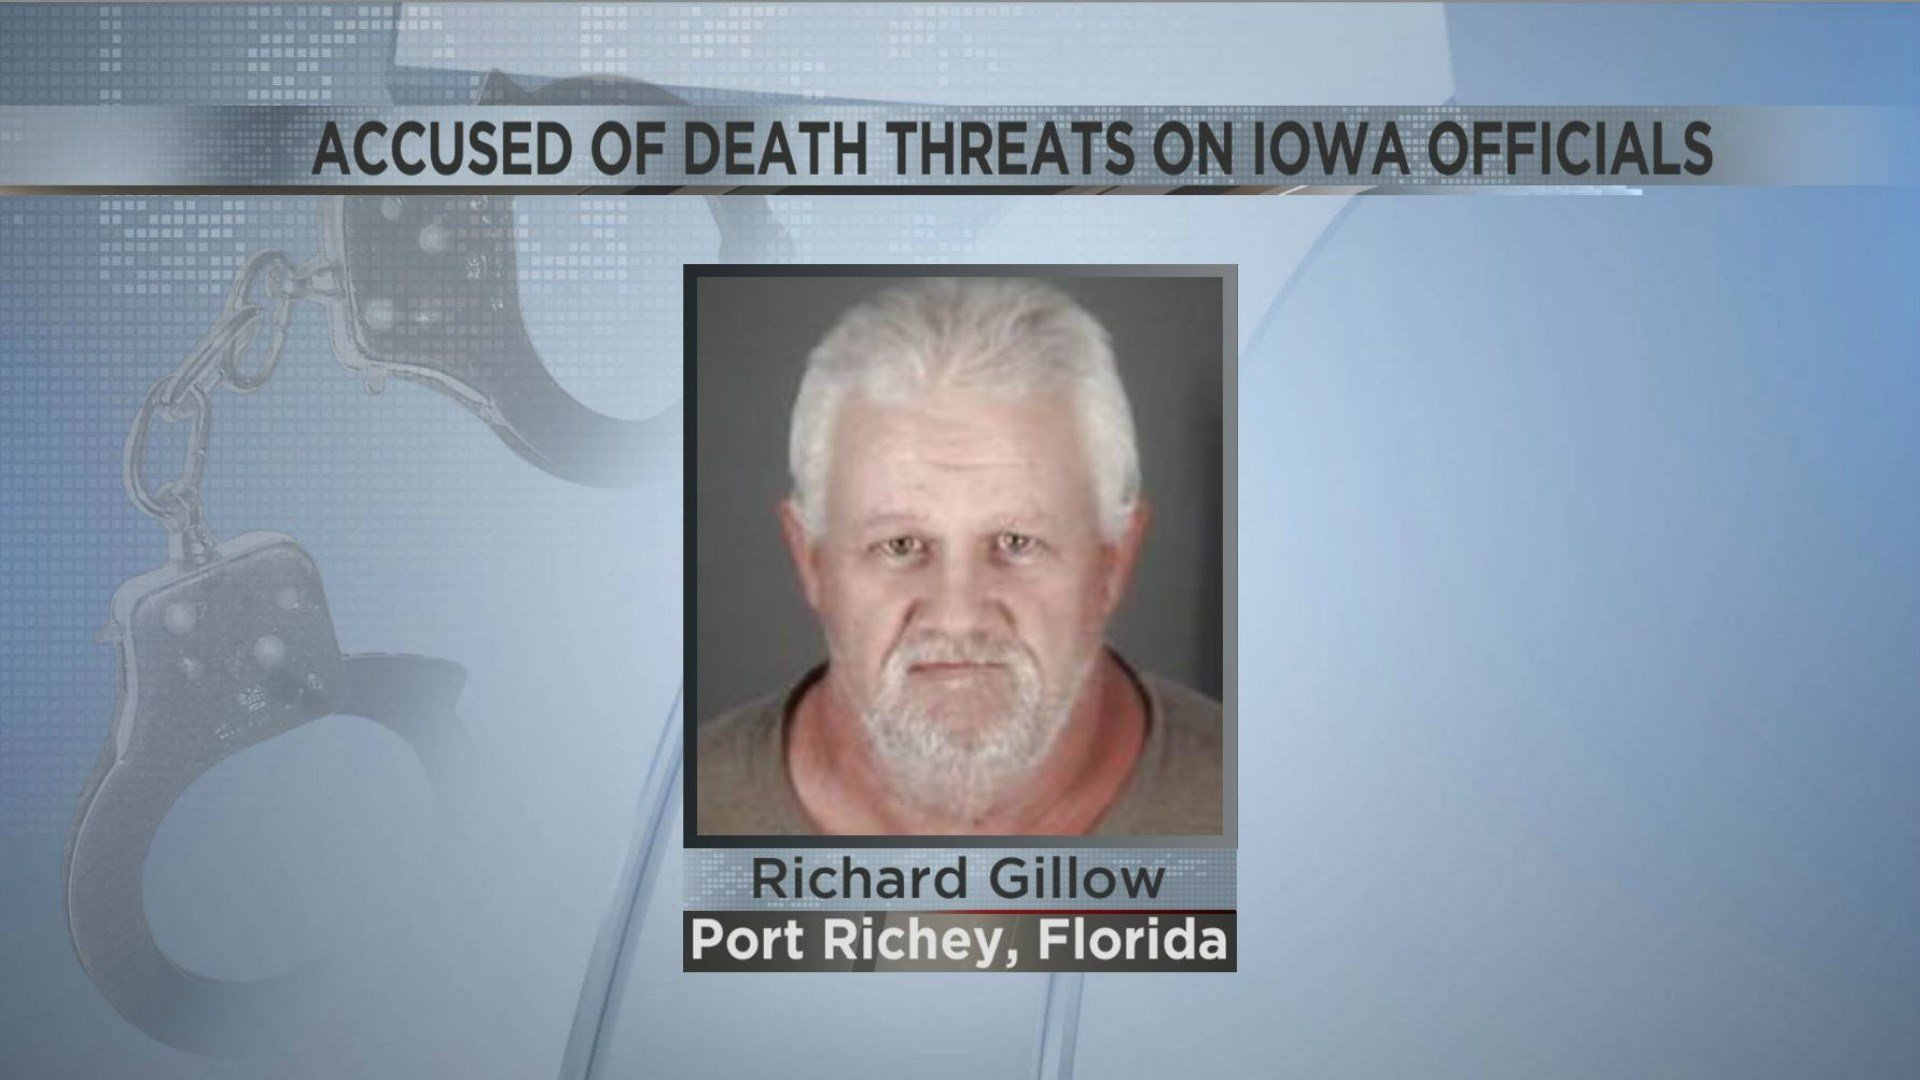 Florida man charged with threatening Iowa state officials